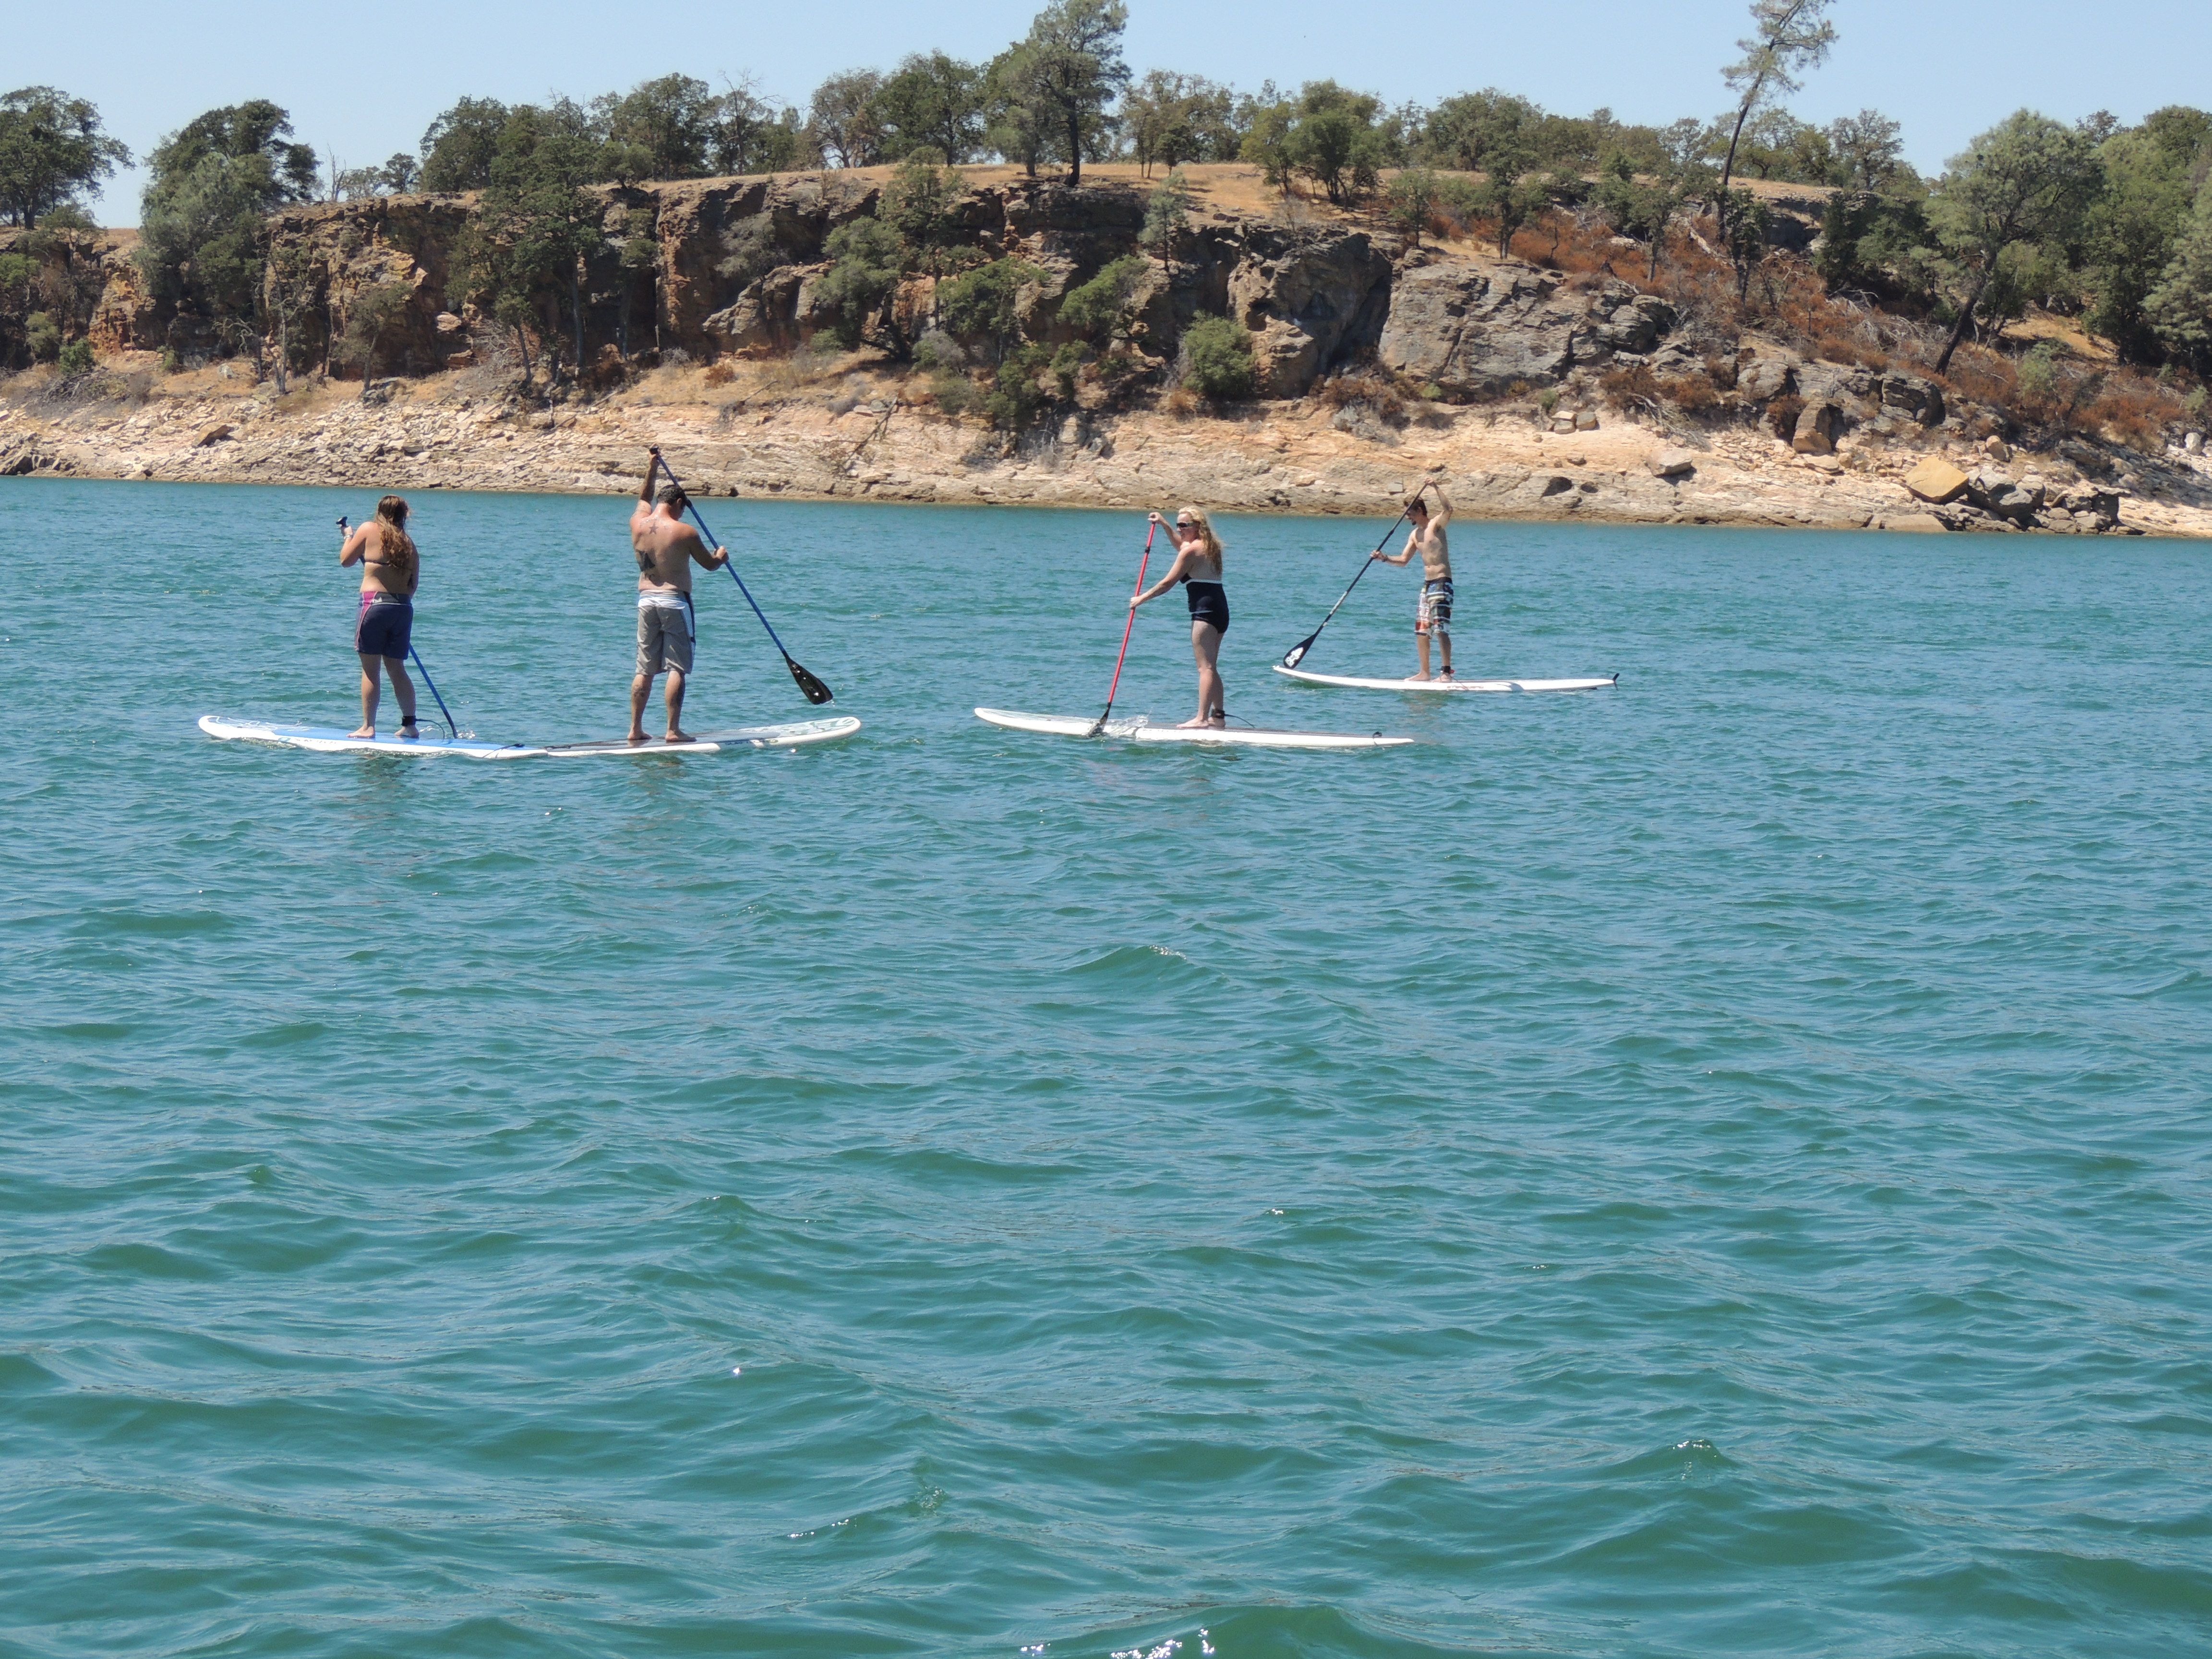 Stand Up Paddleboarding at Lake Camanche  #sup #sierrafoothills #learntopaddleboard #lakecamanche  Rent Paddleboards at Lake Camanche www.camancherecreation.com